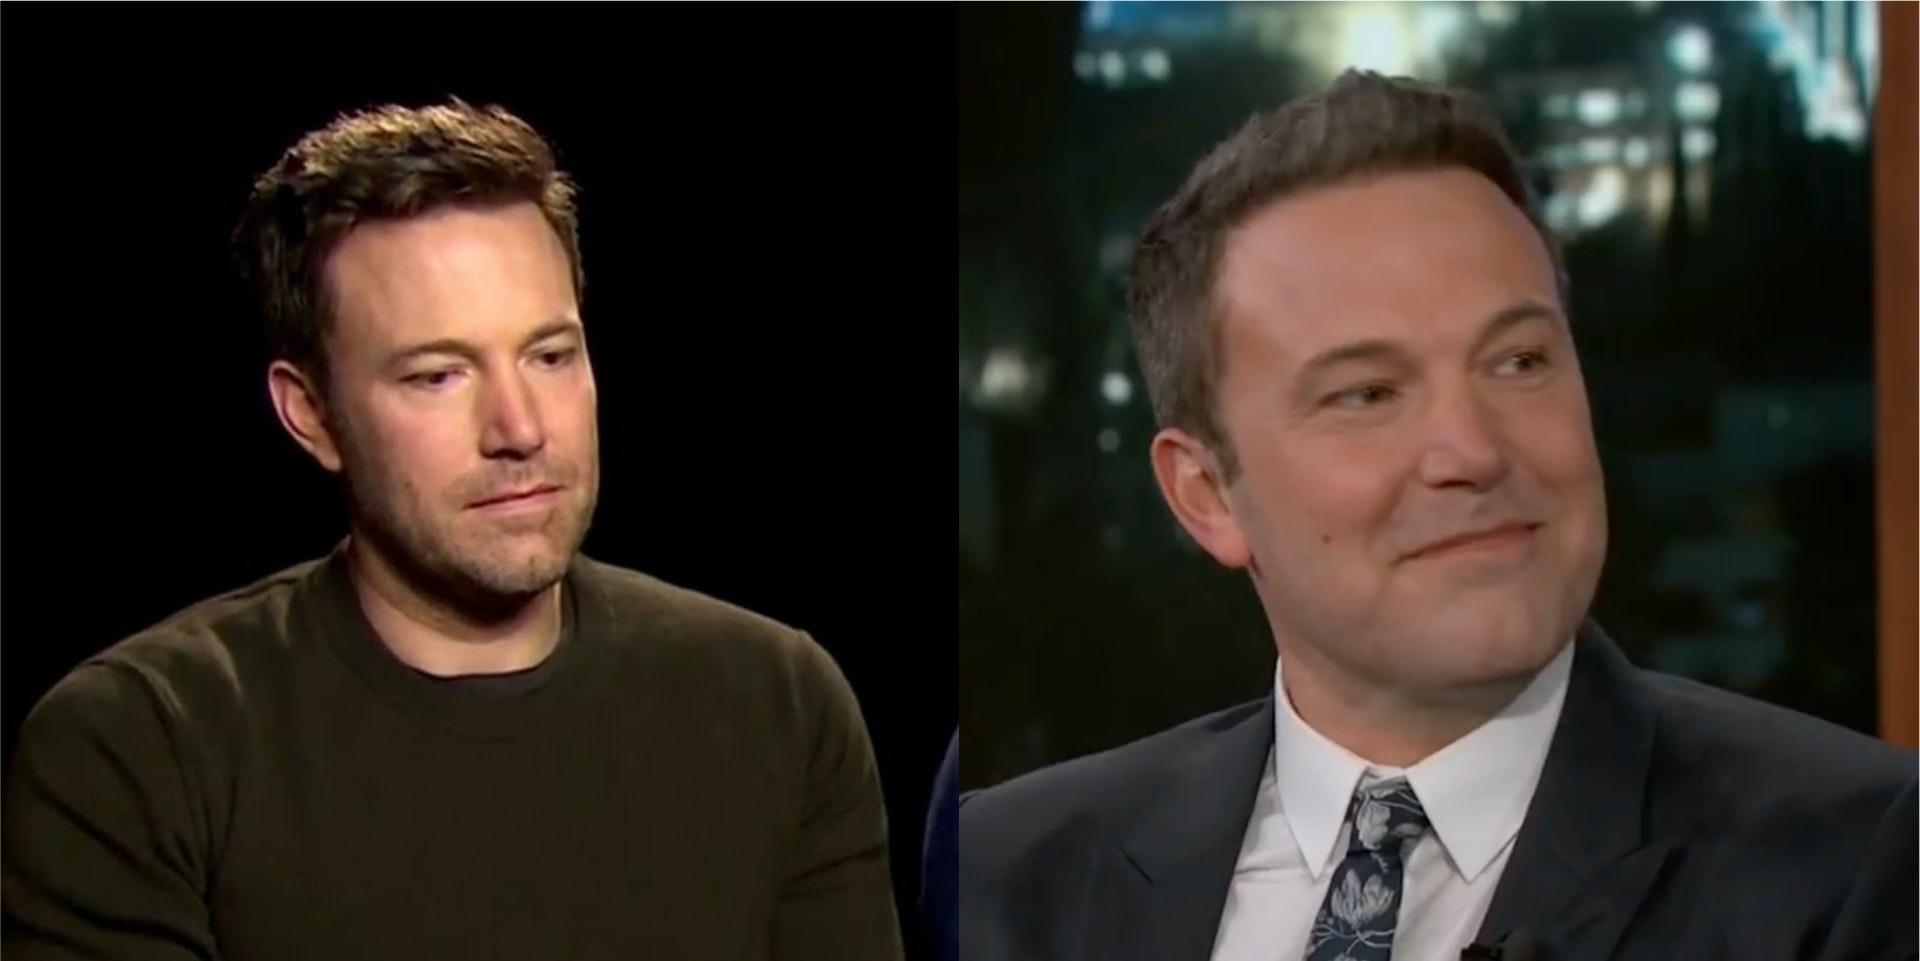 Ben Affleck Looks So Happy to Not Be Batman in the DC Movies Anymore